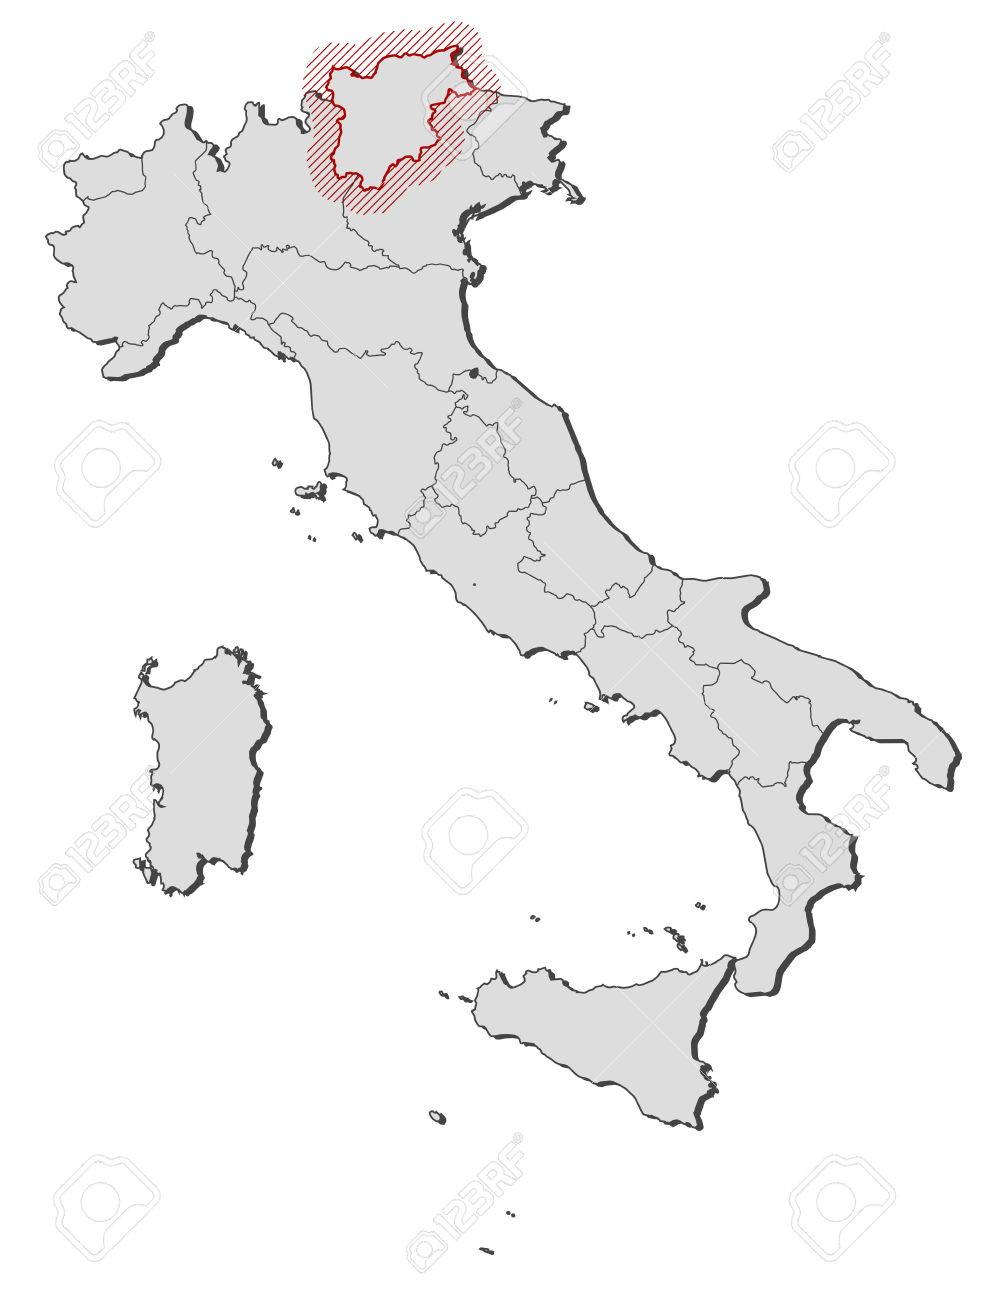 Cartina Italia Trentino Alto Adige.Map Of Italy With The Provinces Trentino Alto Adige Is Highlighted Royalty Free Cliparts Vectors And Stock Illustration Image 58073973